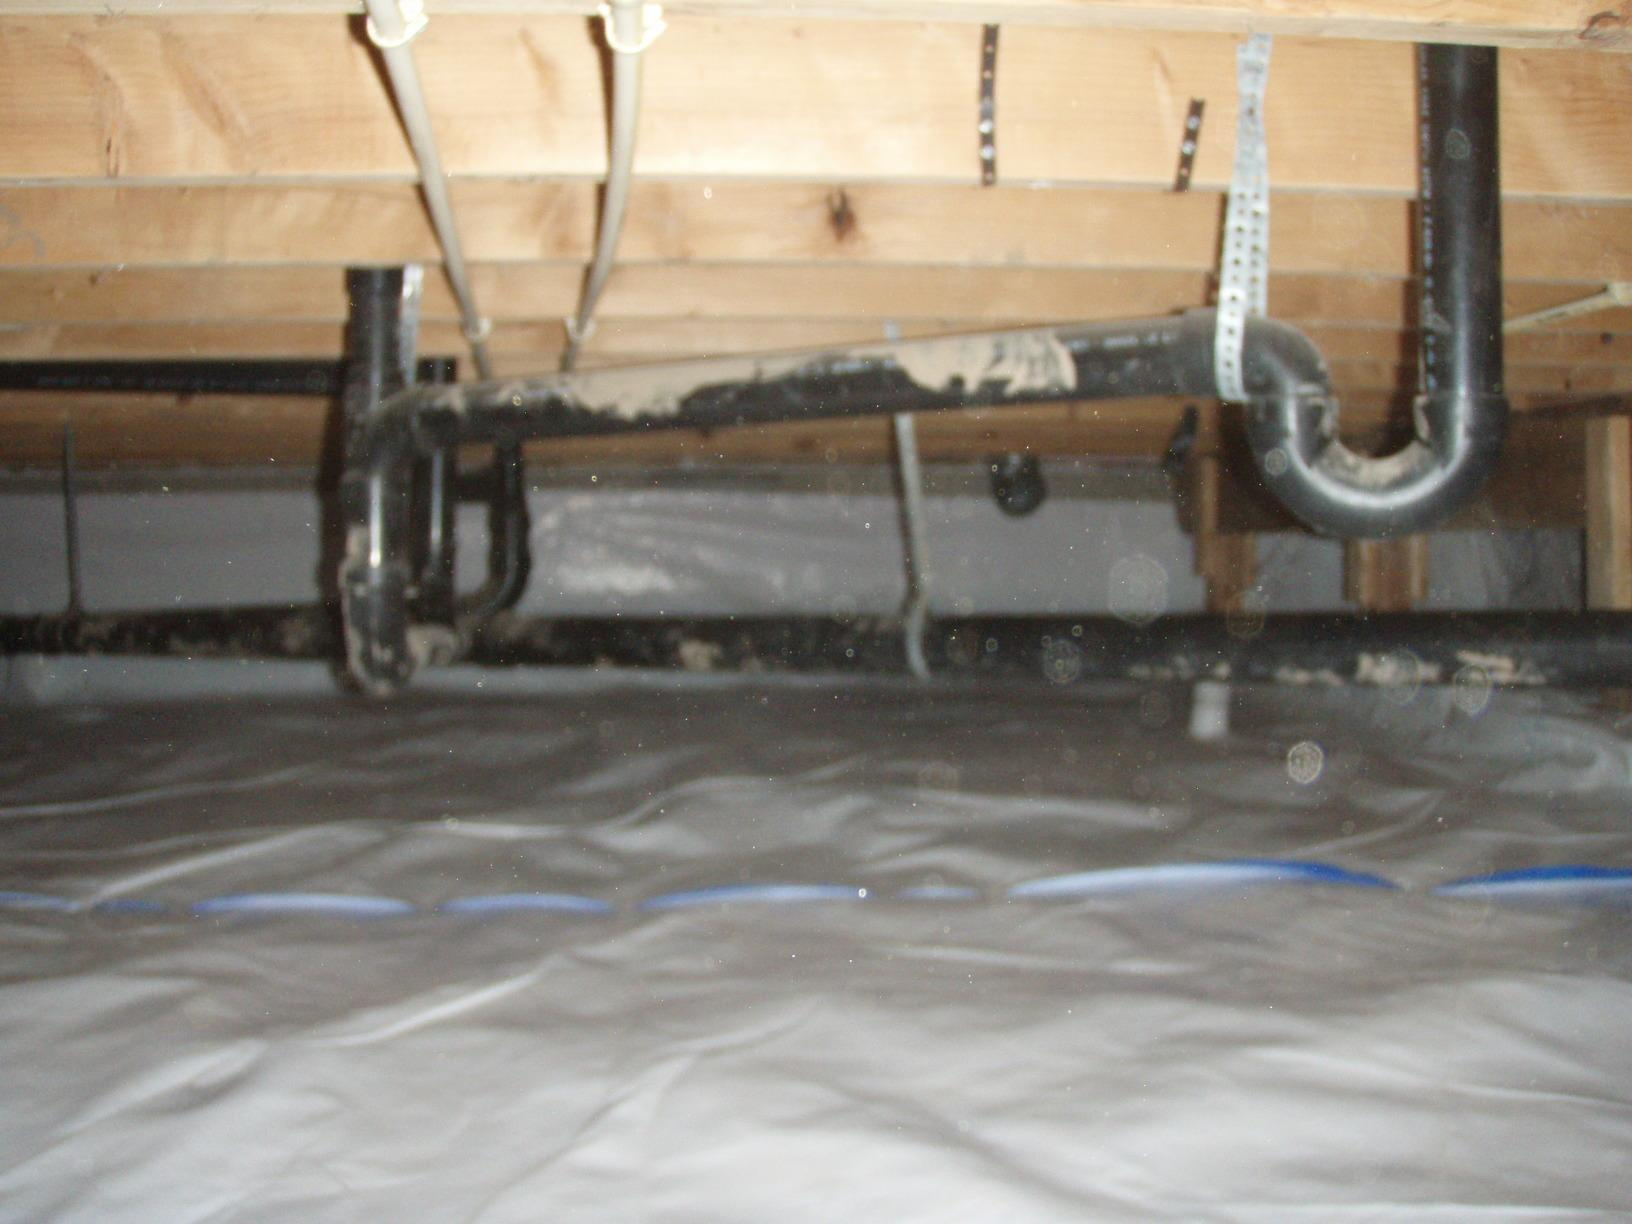 Dirty Crawlspace Transformed with CleanSpace - After Photo